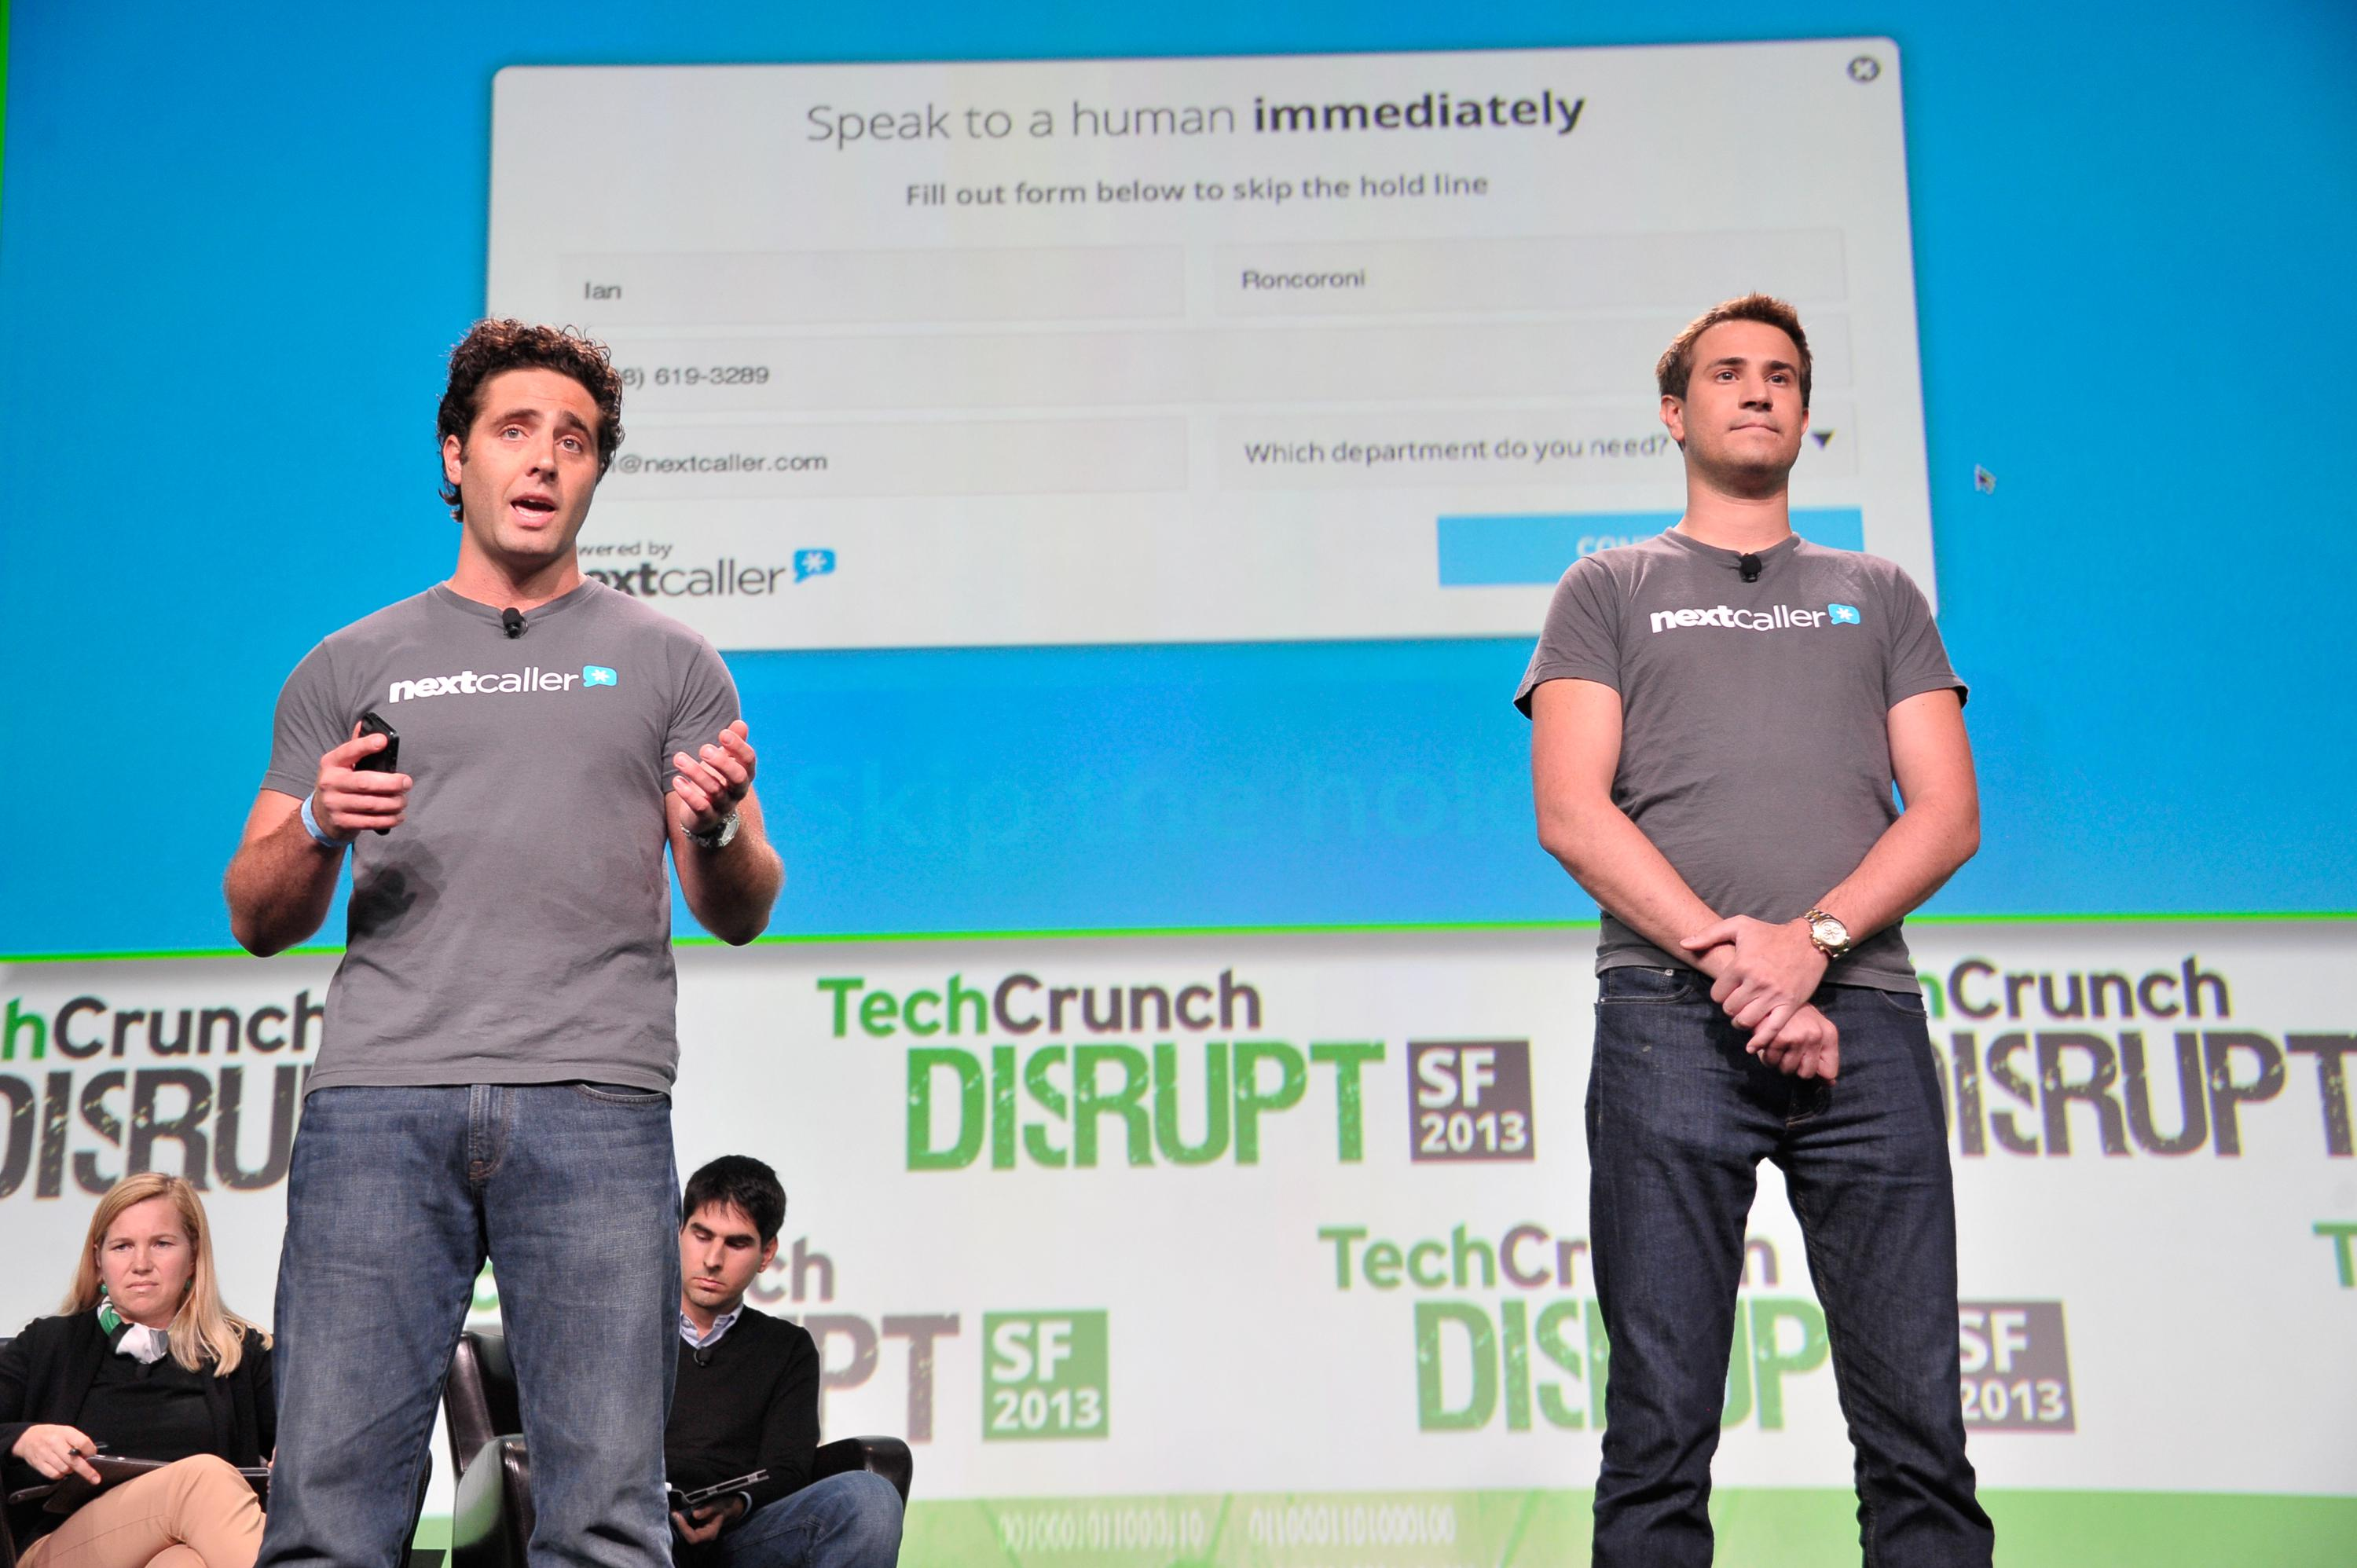 Photo by Steve Jennings/Getty Images for TechCrunch courtesy of Newscred